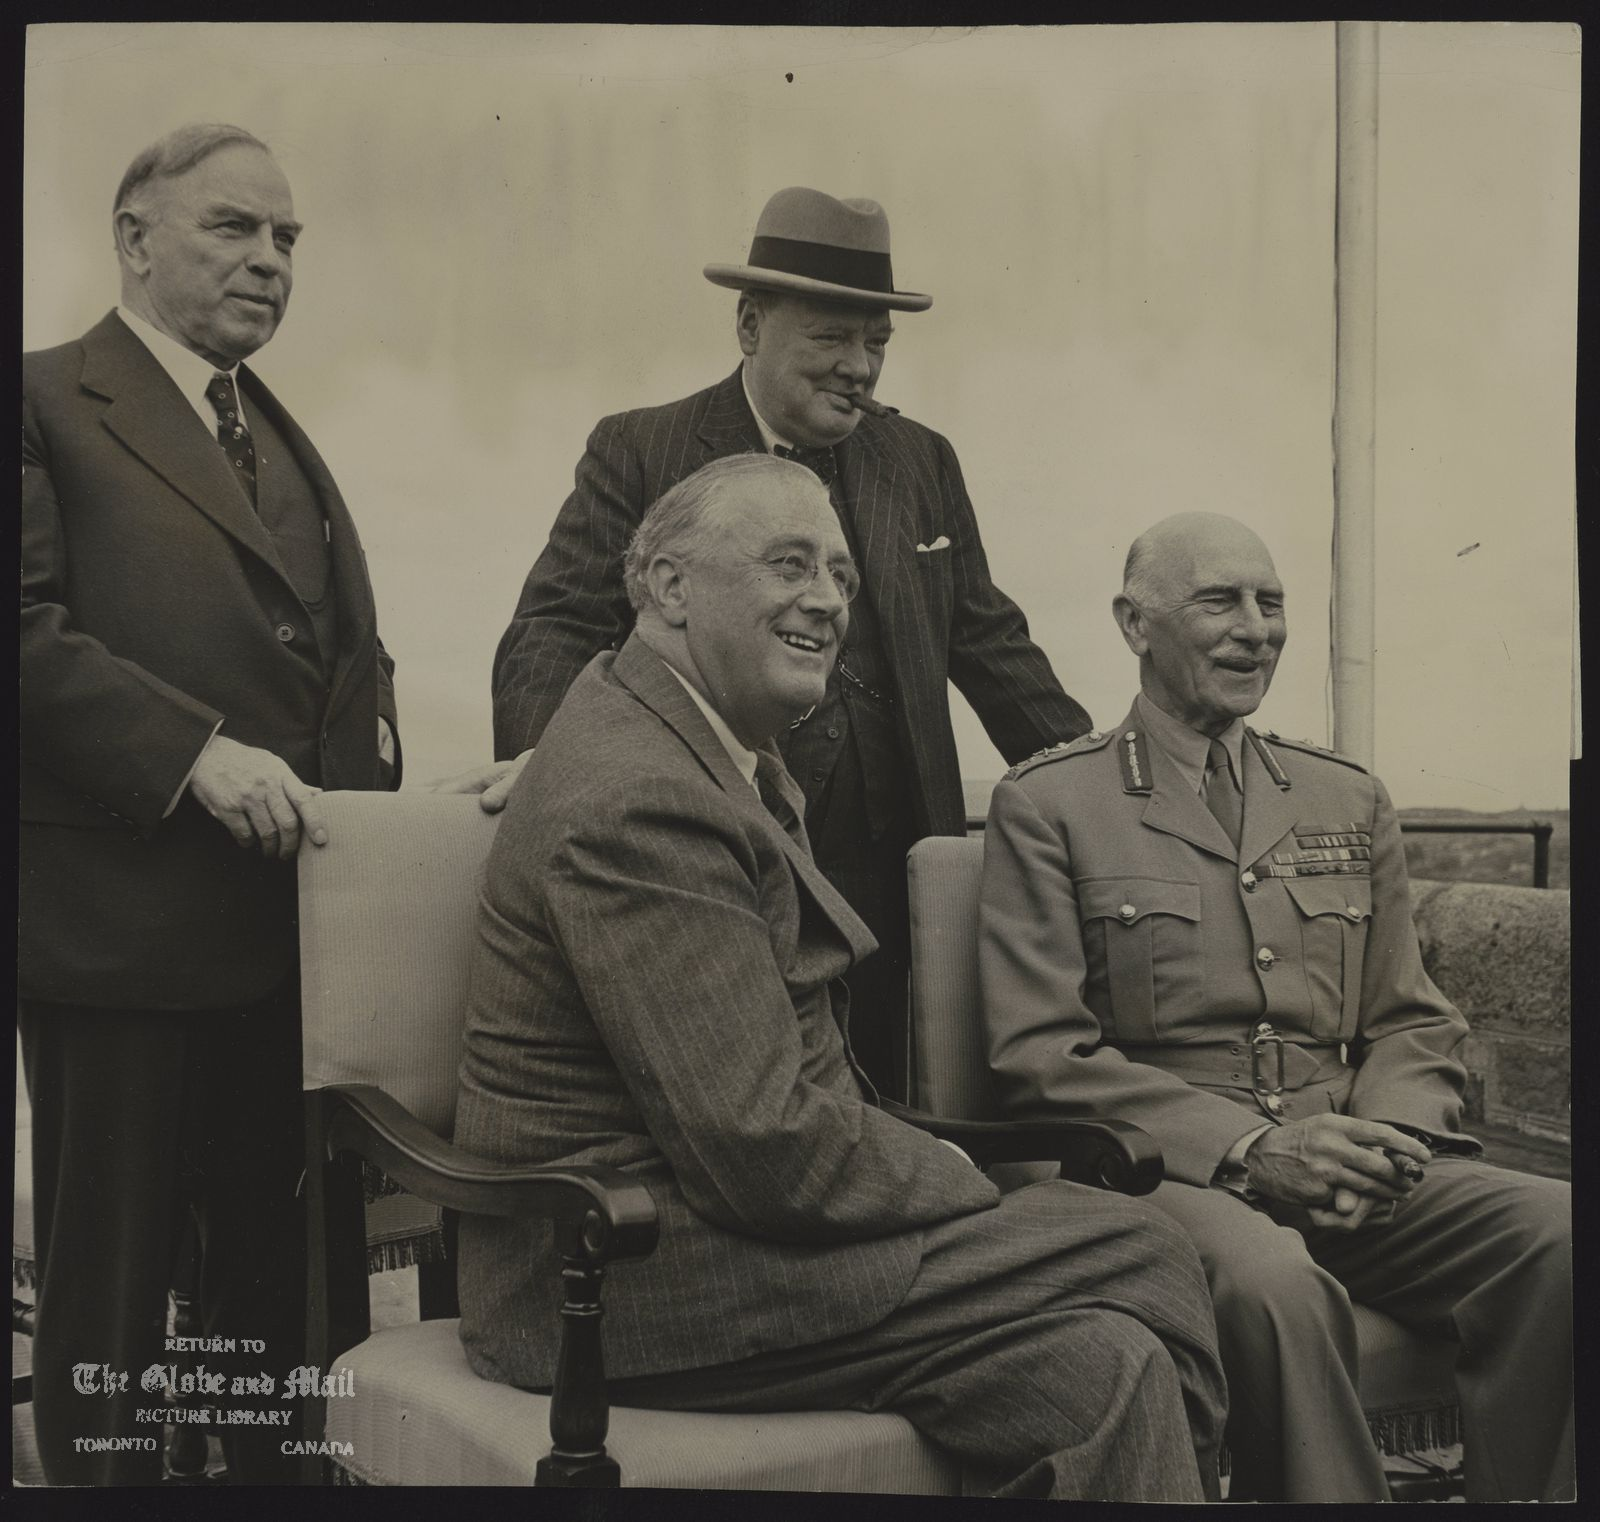 QUEBEC CONFERENCE 1943 BIG THREE OF UNITED NATIONS TOGETHER IN QUEBEC CITY QUEBEC, August 18th ? Within the ancient walls of Quebec's historic Citadel, summer residence of Canada's Governor General, the heads of Great Britain, Canada and the United States sat in conference today with their combined chiefs of staff, In the afternoon they came out on the terrace overlooking the St. Lawrence to pose for photographers and newsreel cameramen. President Roosevelt, left, sat beside the Earl of Athlone, Governor General of Canada, while behind them stood Prime Minister Mackenzie King and Prime Minister Winston Churchill. Concerned about the safety of photographers who climbed up on the parapet to make their pictures, Mr. King and Mr. Churchill warned them several times not to slip and fall off.